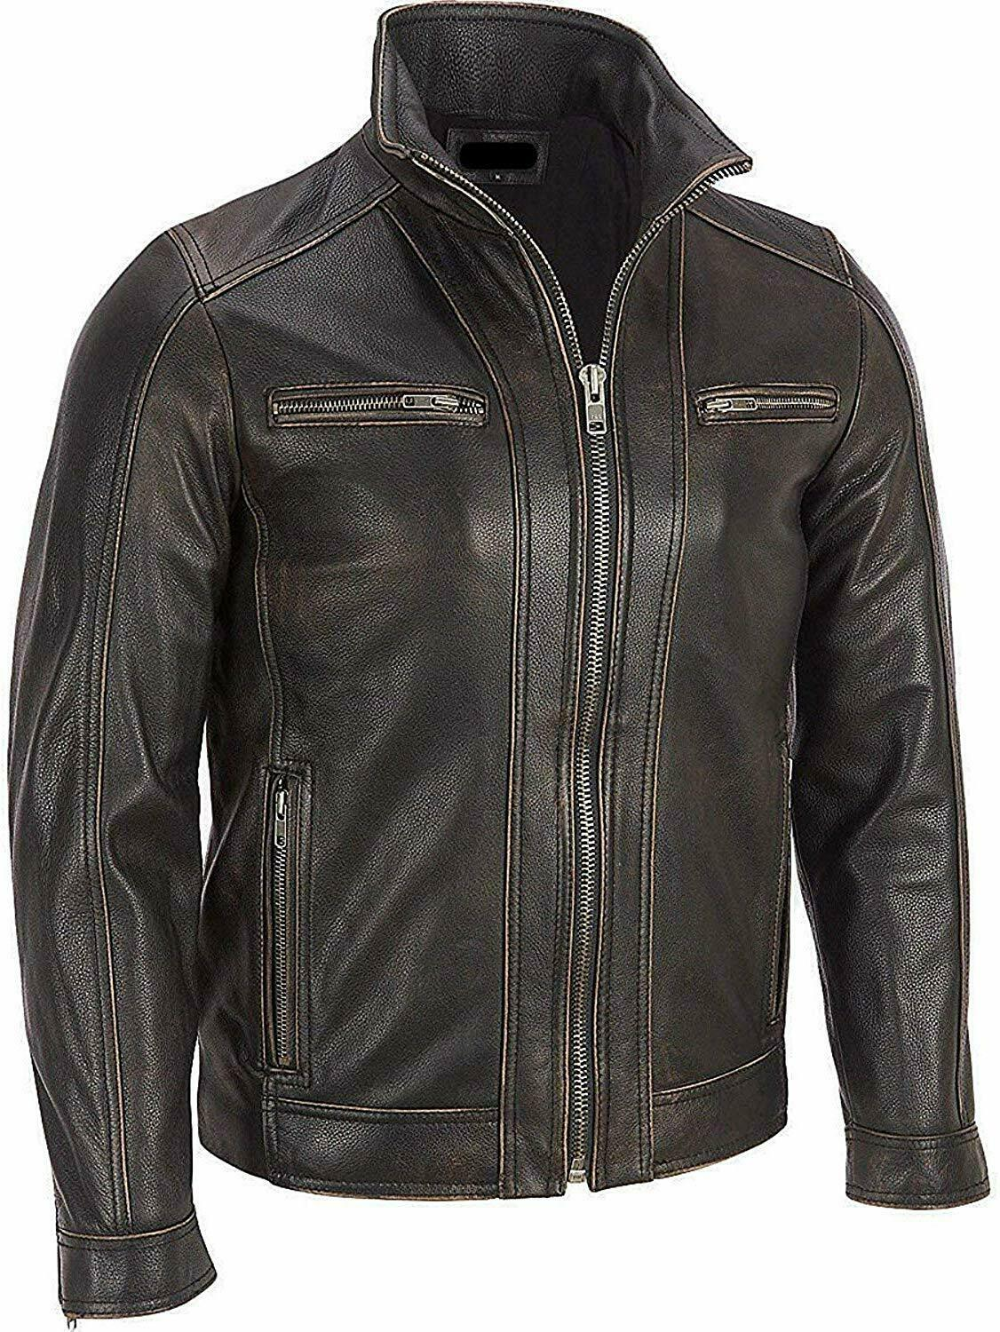 Details about Men's Black Rivet Leather Faded Seam Cycle